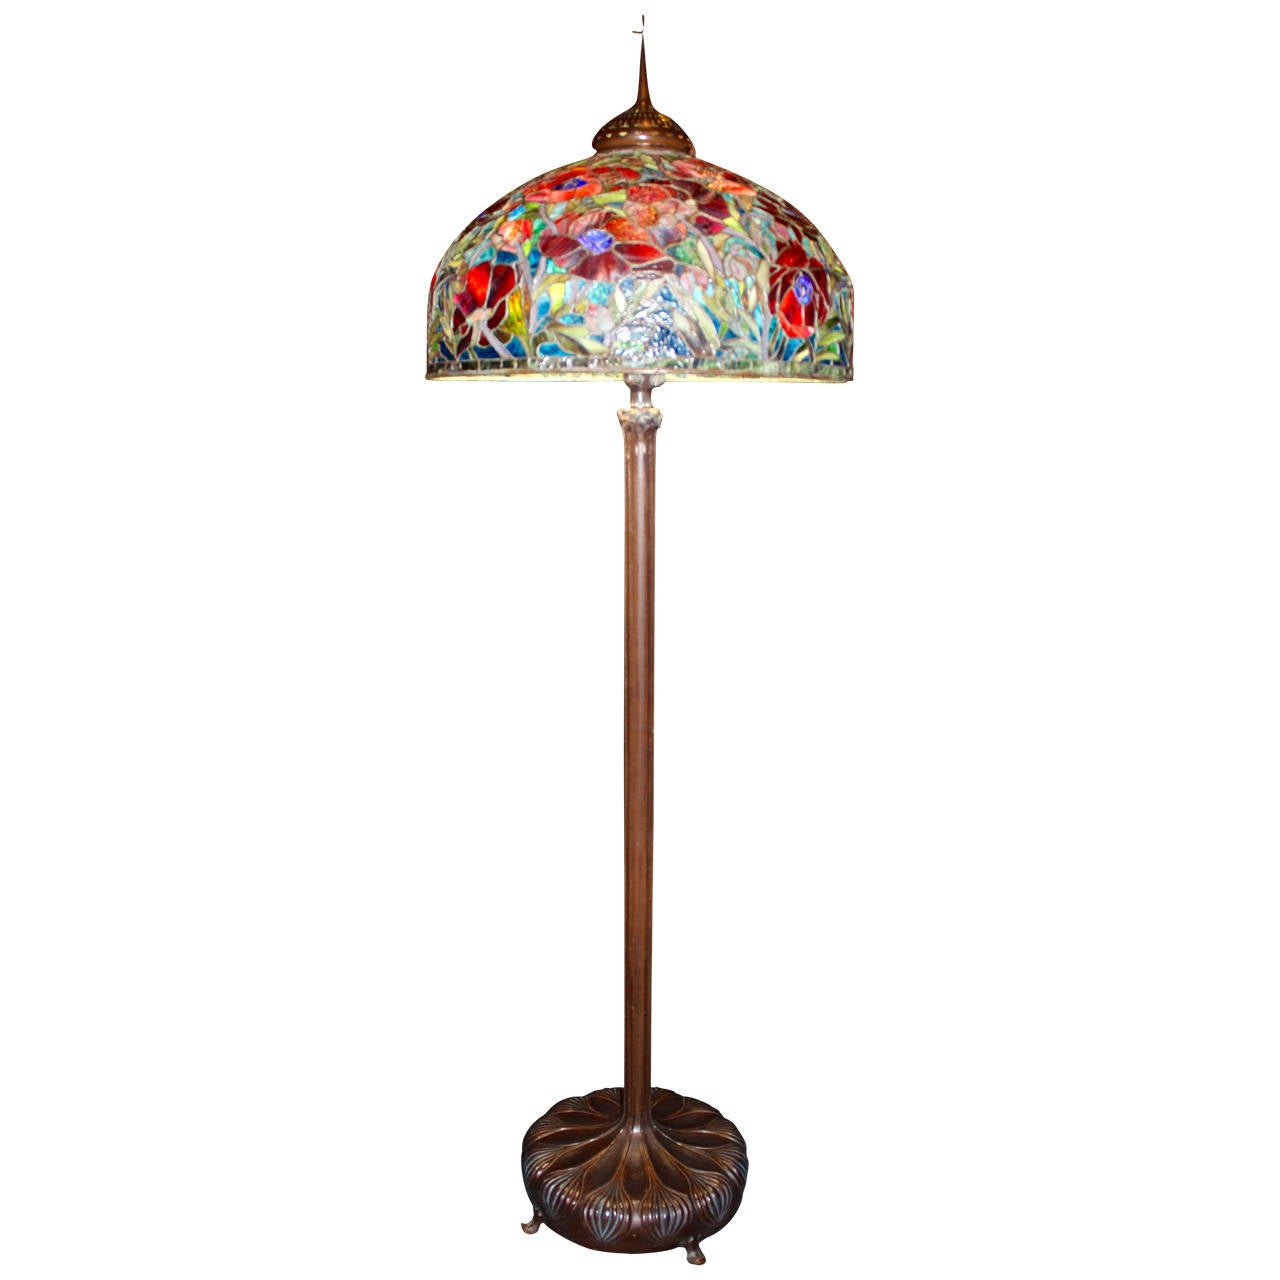 Oriental Poppy Tiffany Style Floor Lamp For Sale at 1stdibs